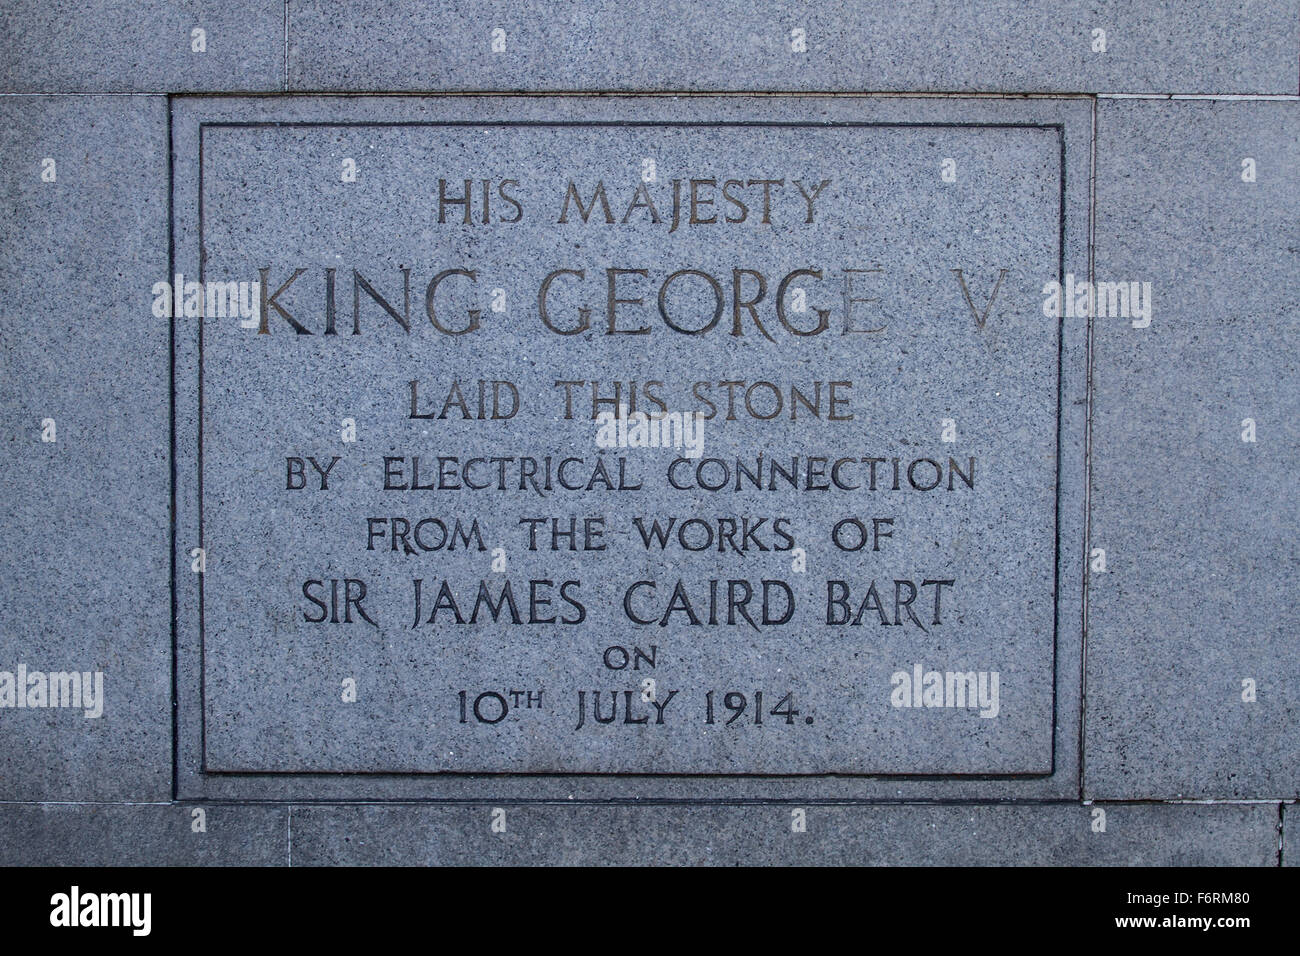 King George V laid this engraved plaque in 1914 to commemorate the works of Sir James Caird Bart in Dundee, UK - Stock Image